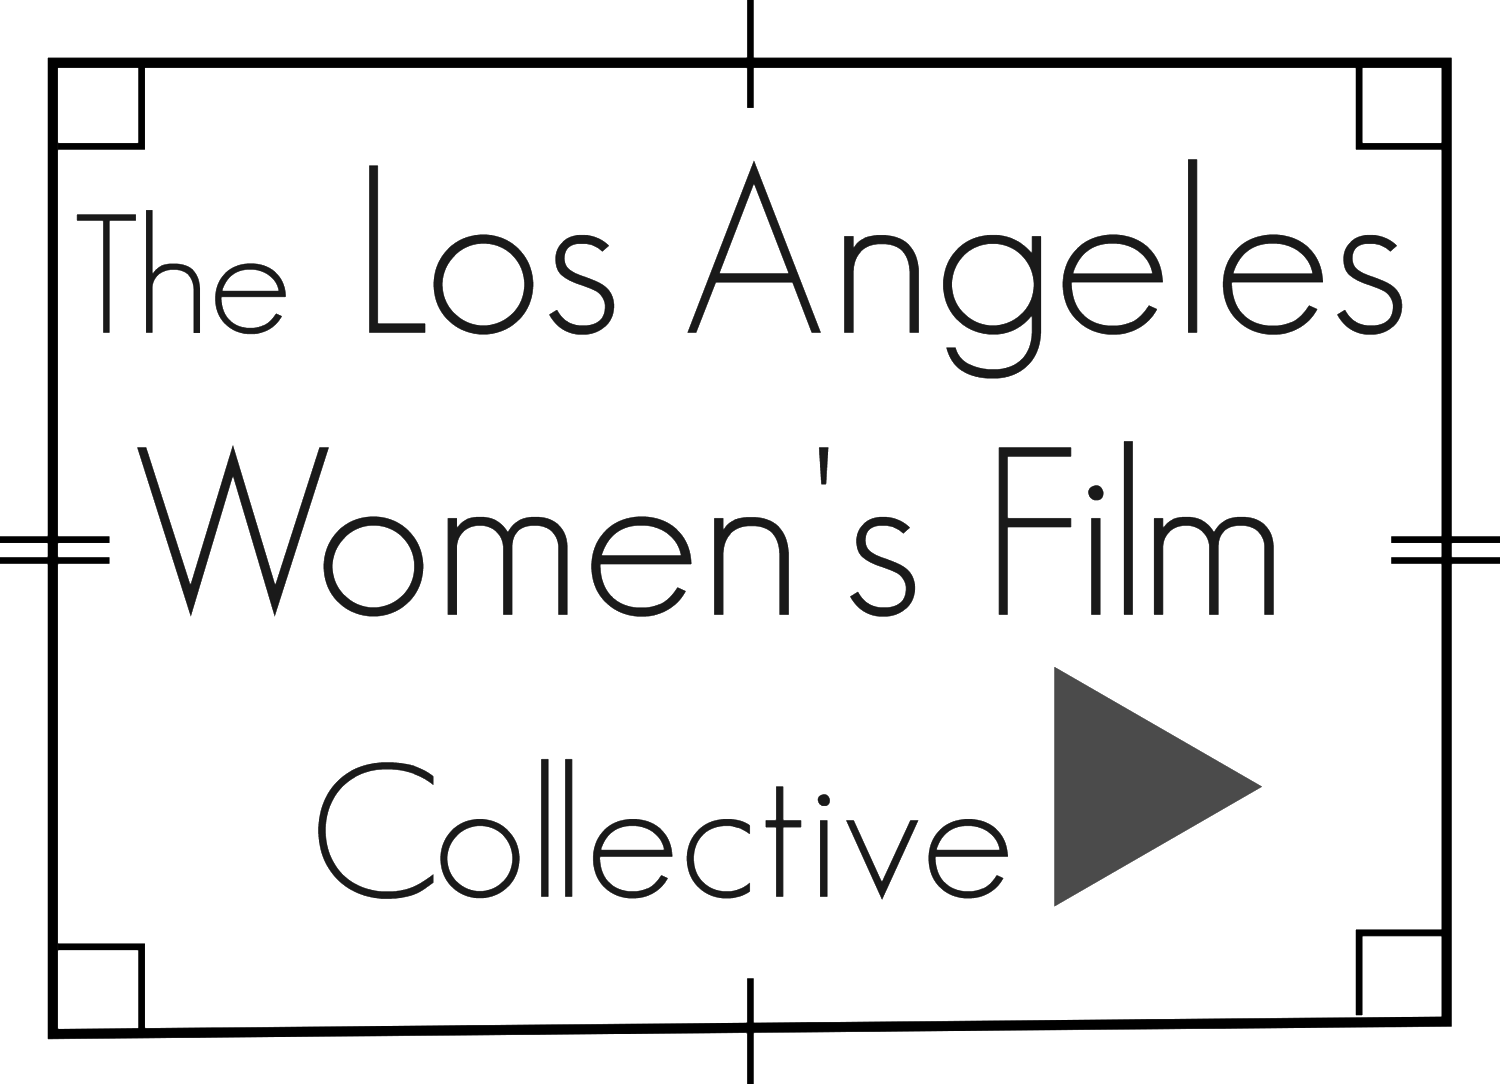 LA Women's Film Collective.png